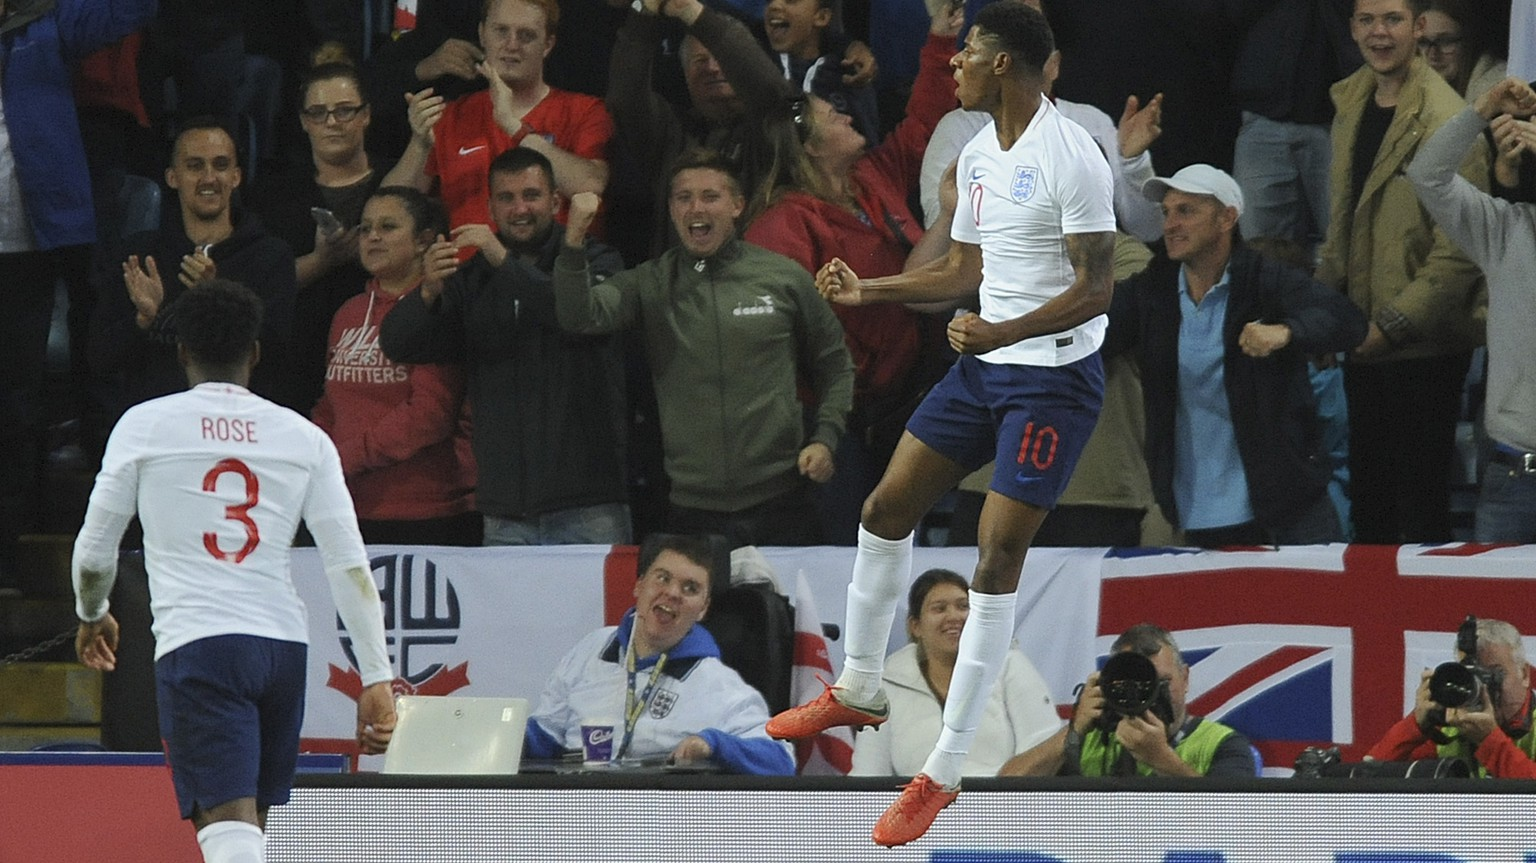 England's Marcus Rashford celebrates after scoring his side's first goal during the International friendly soccer match between England and Switzerland at the King Power Stadium in Leicester, England, Tuesday, Sept. 11, 2018 . (AP Photo/ Rui Vieira)